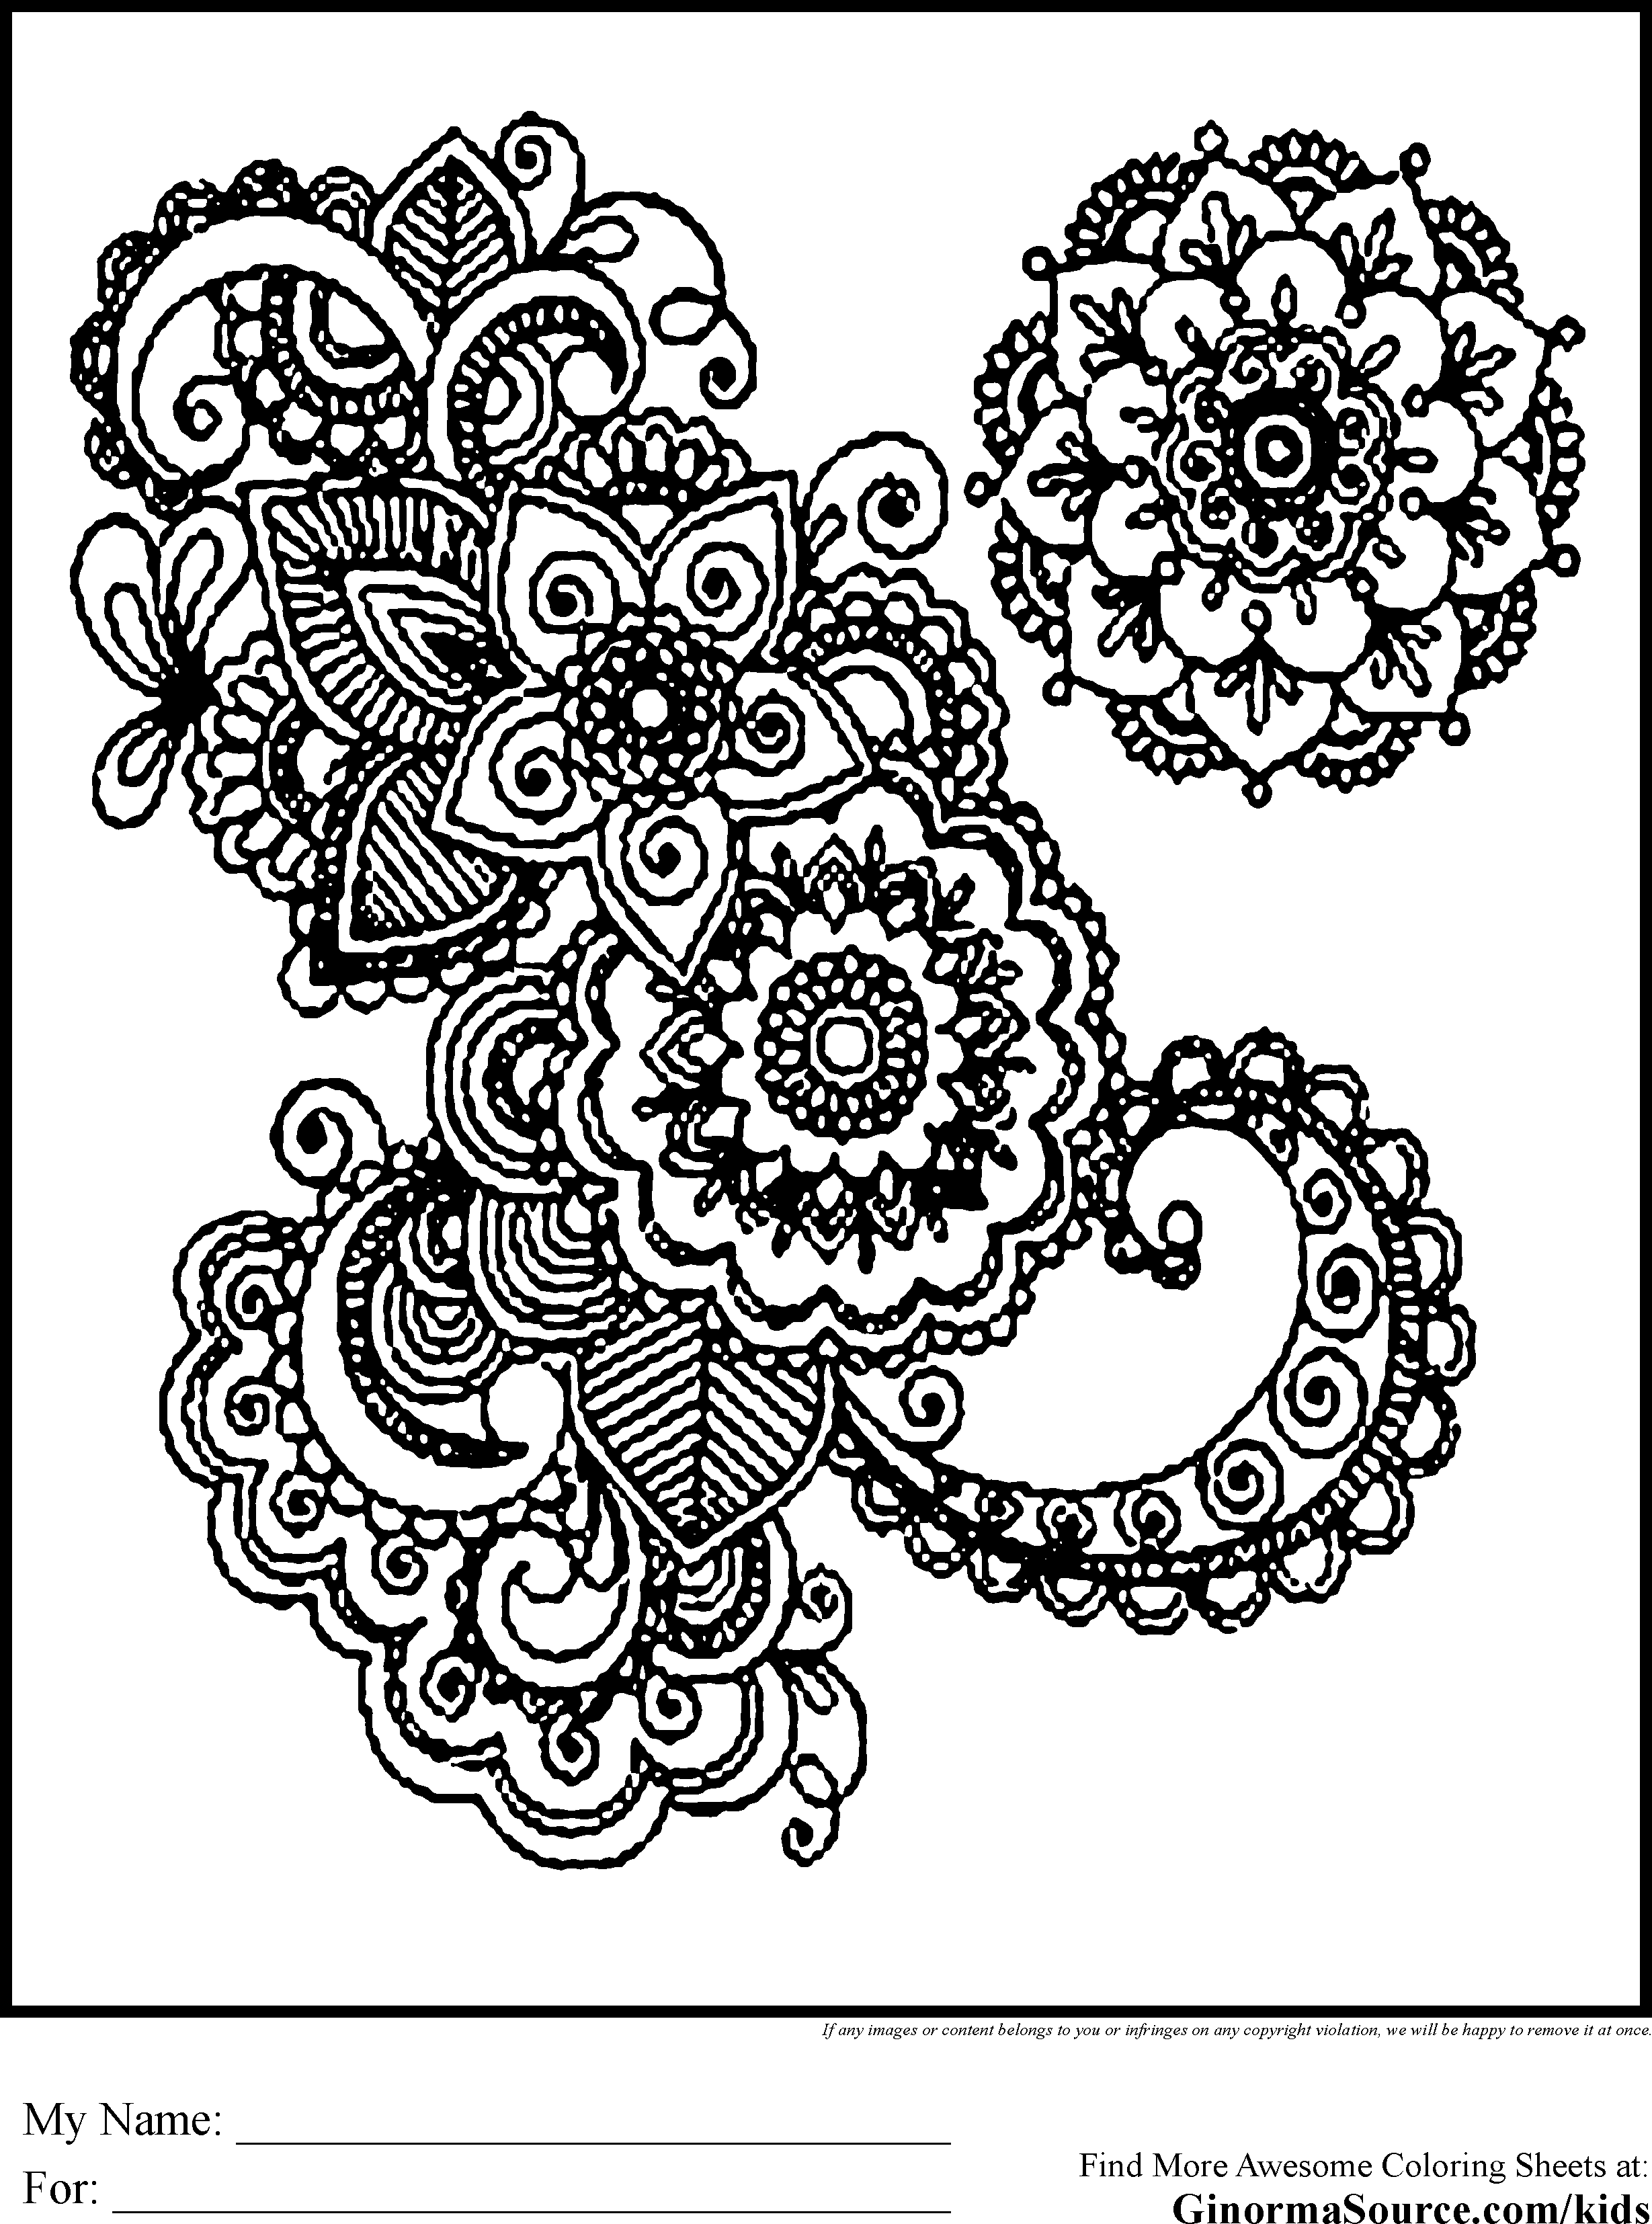 Coloring Pages For Adults Advanced Coloring Pages Free Advanced Coloring Pages